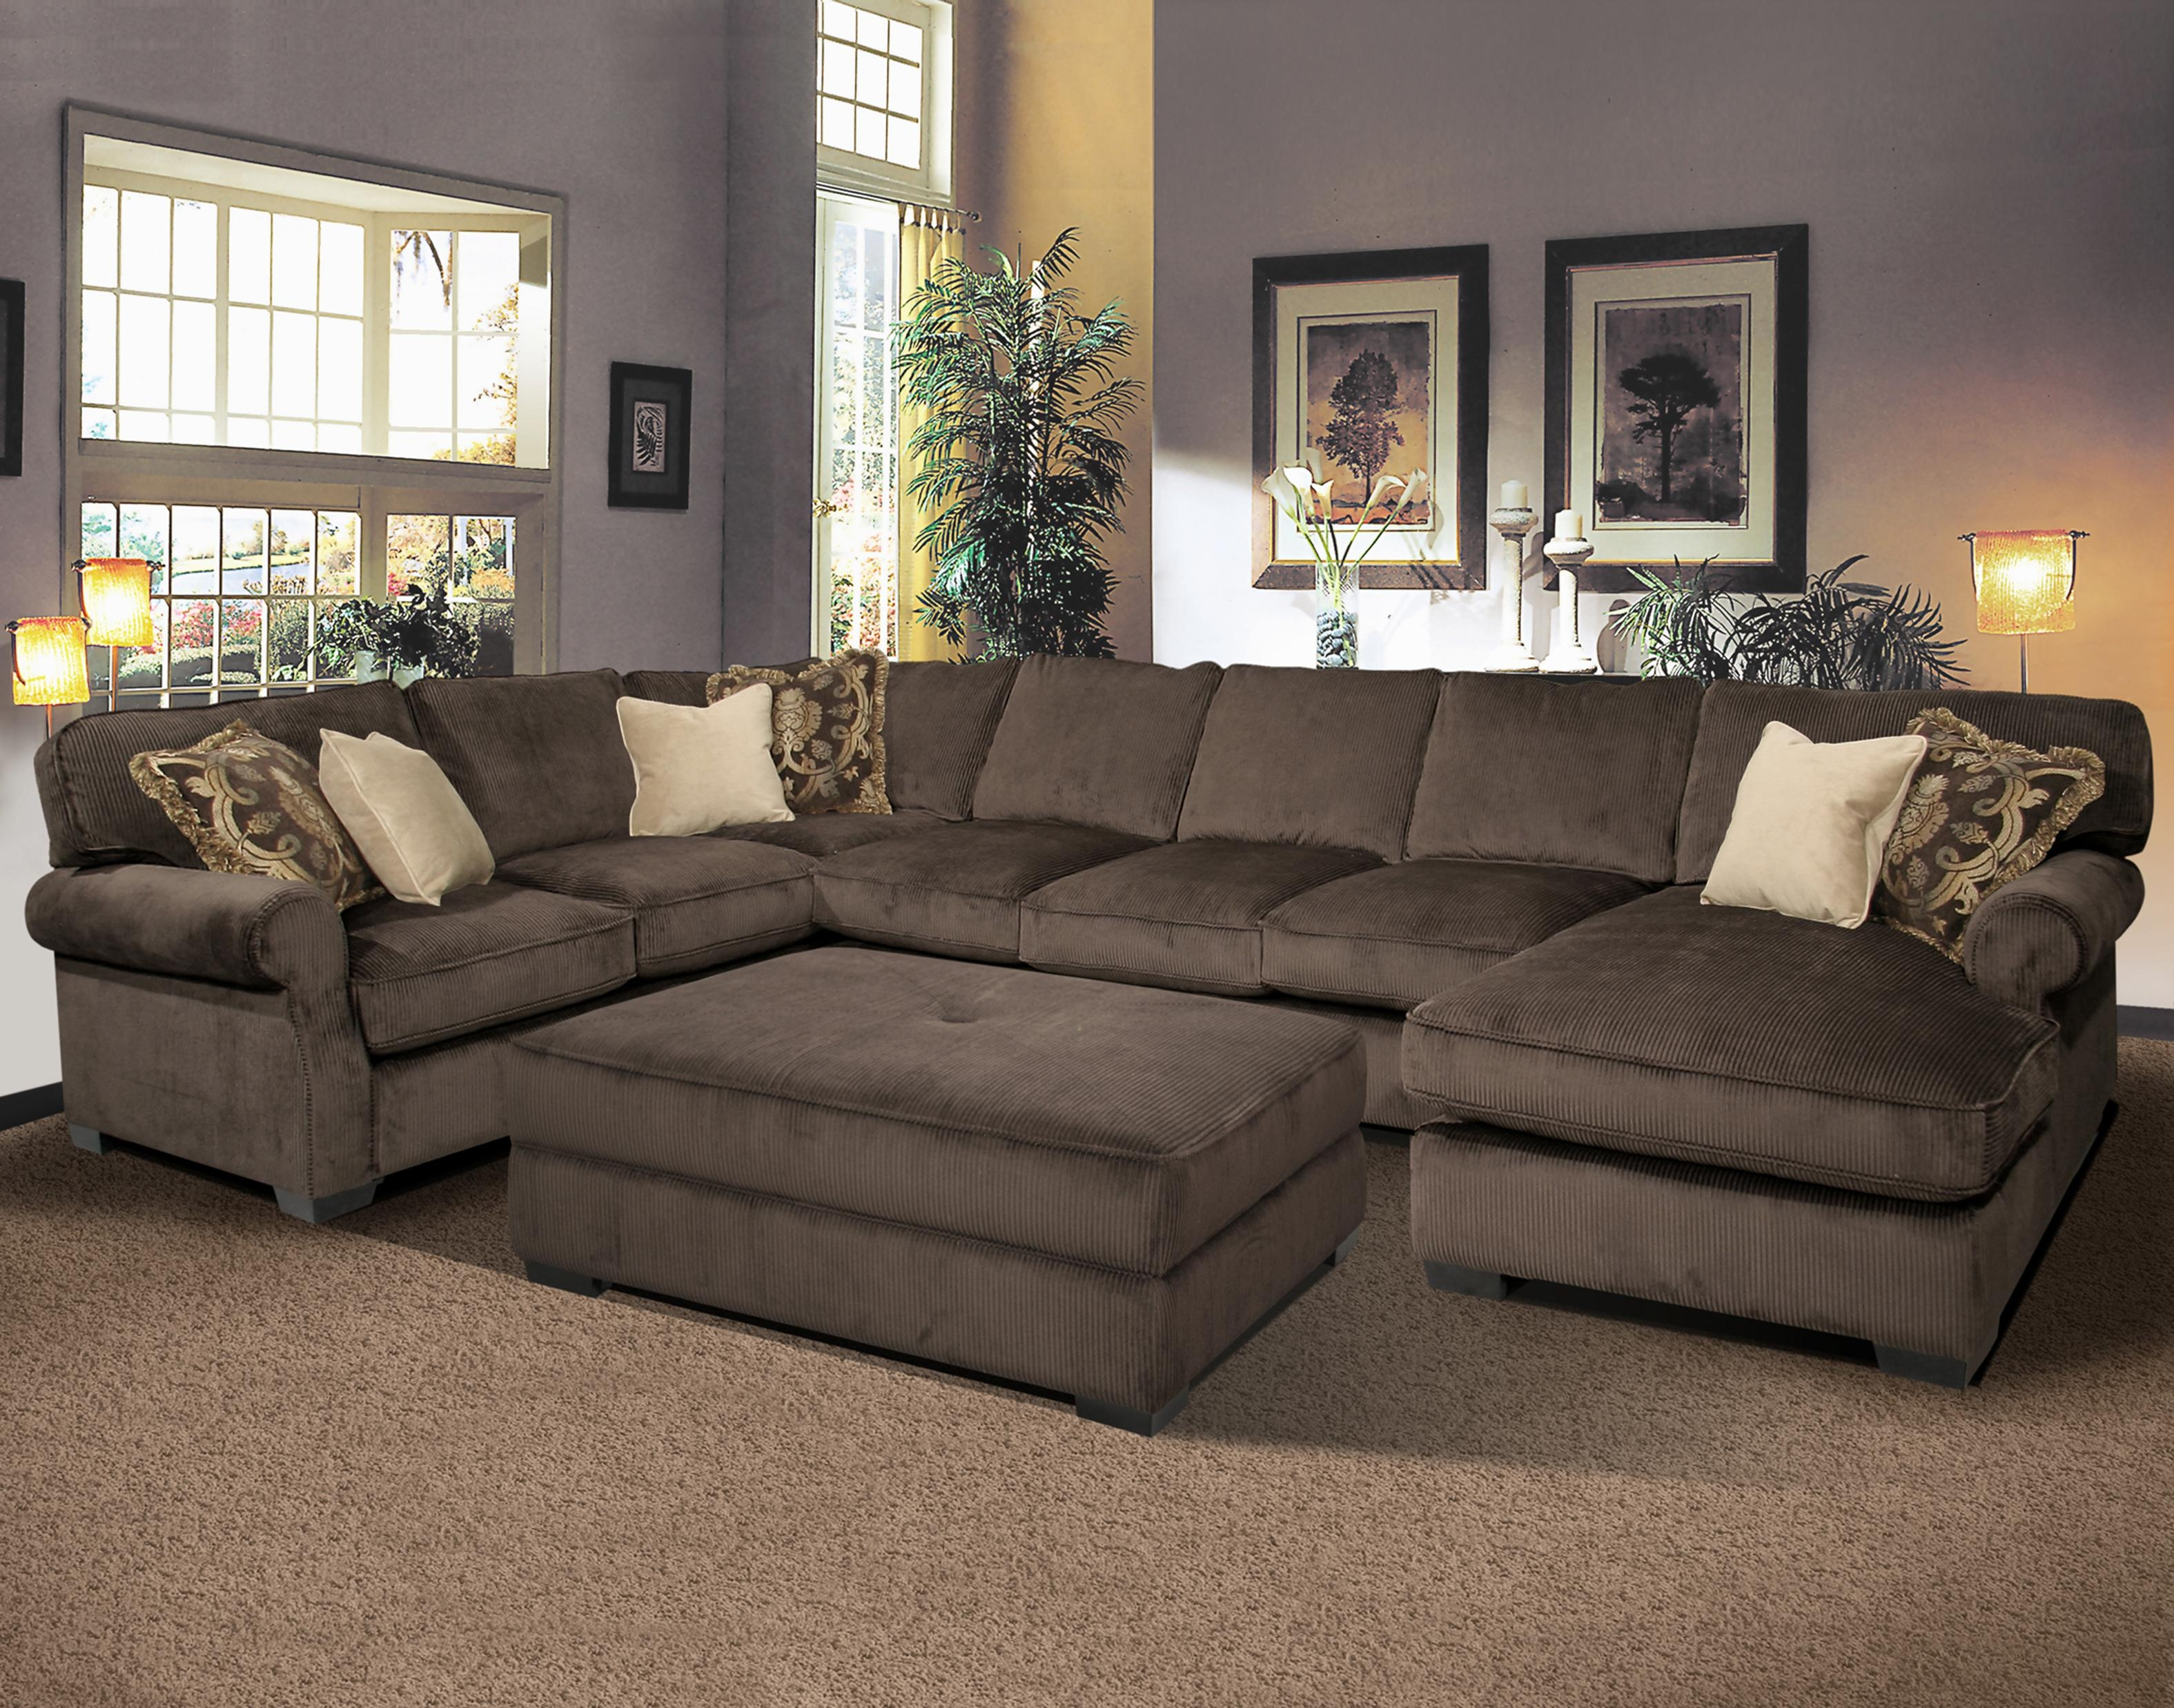 Big And Comfy Grand Island Large 7 Seat Sectional Sofa With Right Intended For Extra Large Sectional Sofas (#2 of 12)